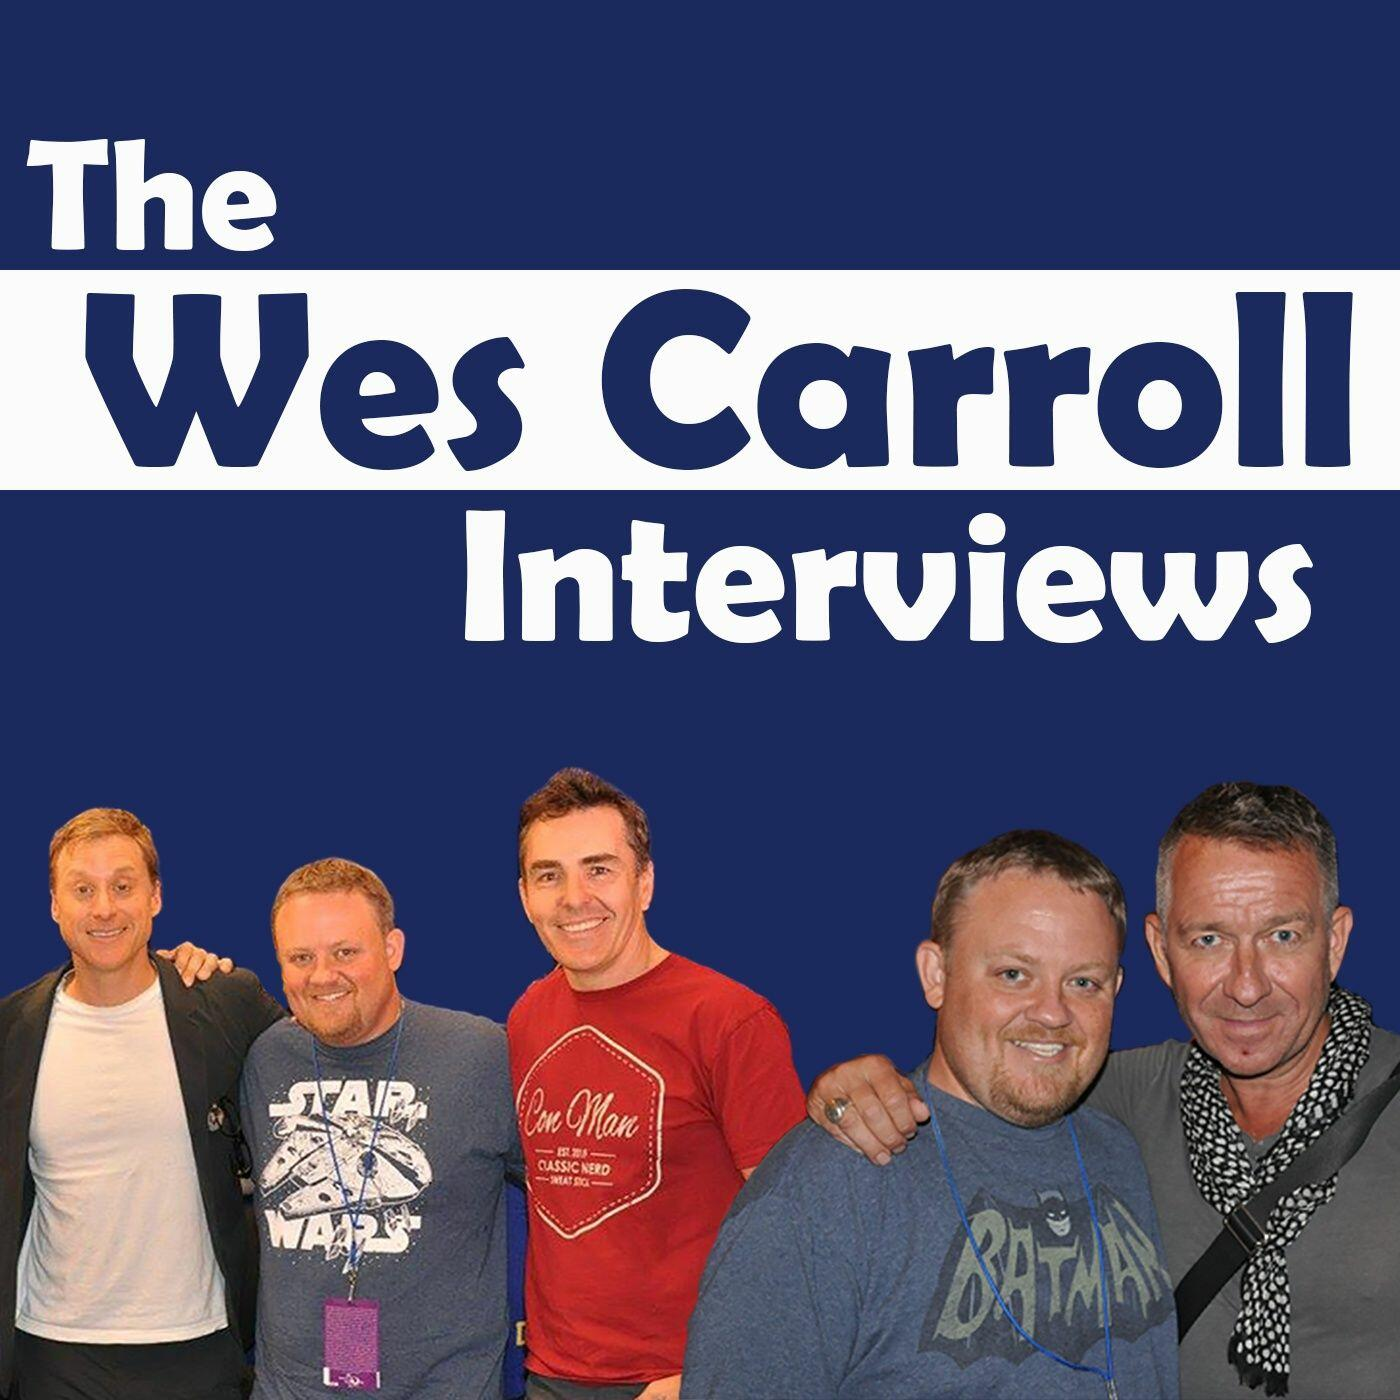 The Wes Carroll Interviews